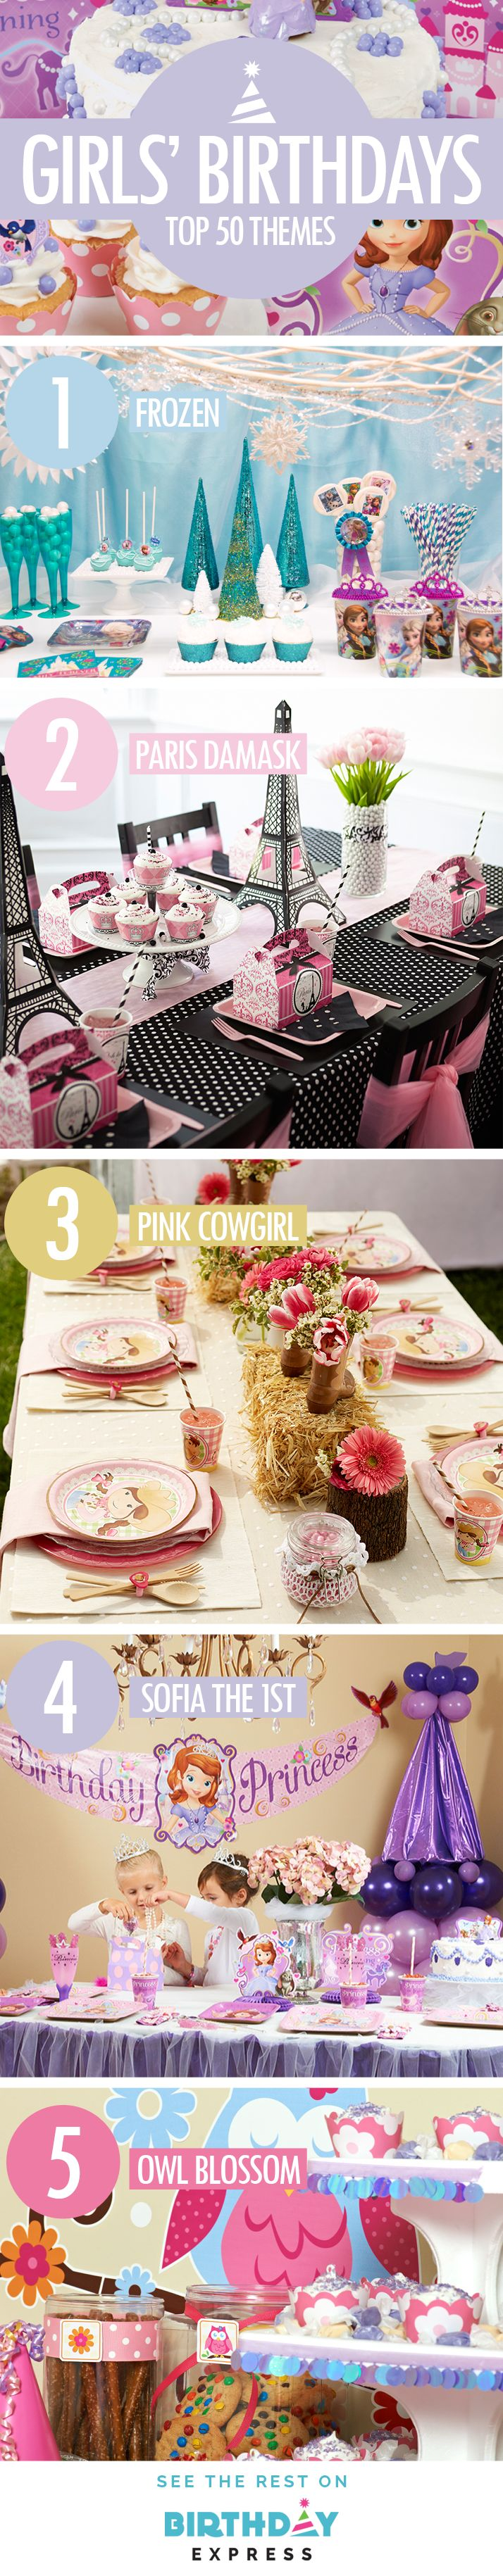 Visit BirthdayExpress.com to see the top 50 Birthday Party Themes For Girls of 2015! Here are the top 5: (1) Frozen –Try Frozen party ideas for something she'll remember forever. (2) Paris Damask – there's no reason that birthday cake and party supplies can't be super stylish. (3) Pink Cowgirl – Celebrate with a little bit of Western flair and a whole lot of girl power! (4) Sofia the 1st – Disney Princesses are always among the top ideas for girls. (5) Owl Blossom – Owl party ideas are…